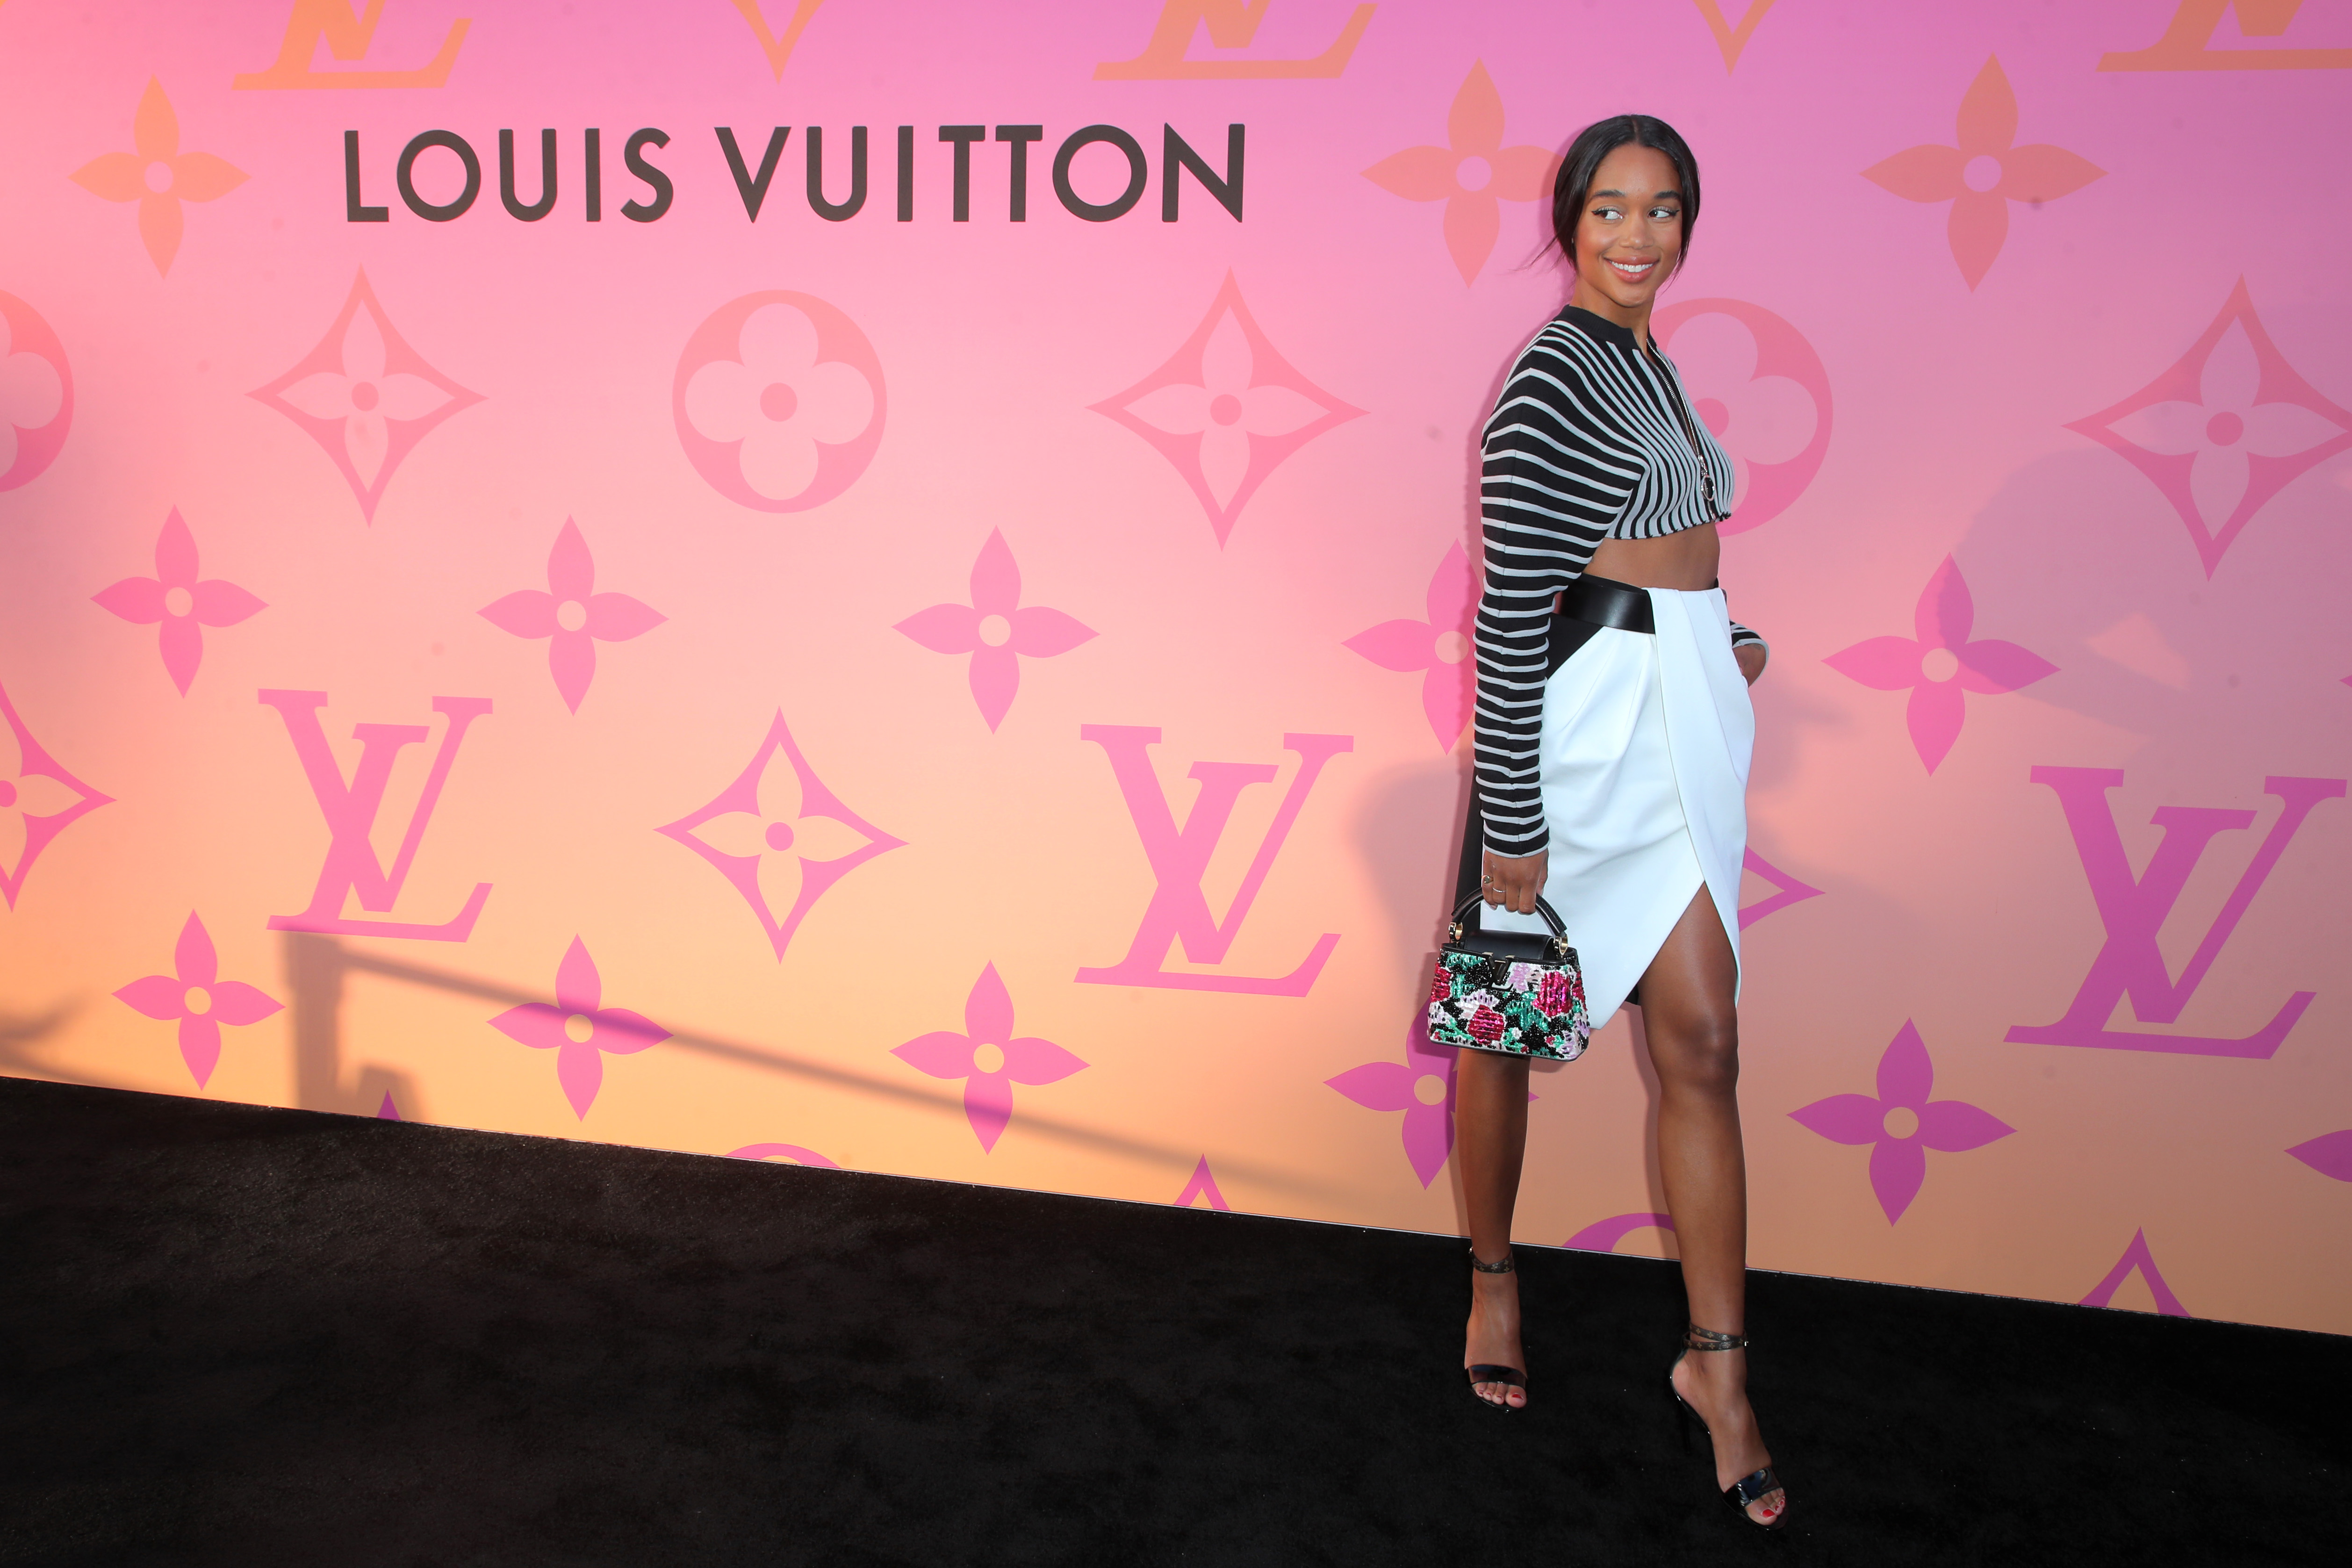 Laura HarrierOpening of Louis Vuitton X Cocktail Party, Arrivals, Los Angeles, USA - 27 Jun 2019 Wearing Louis Vuitton Same Outfit as catwalk model *10231796aj